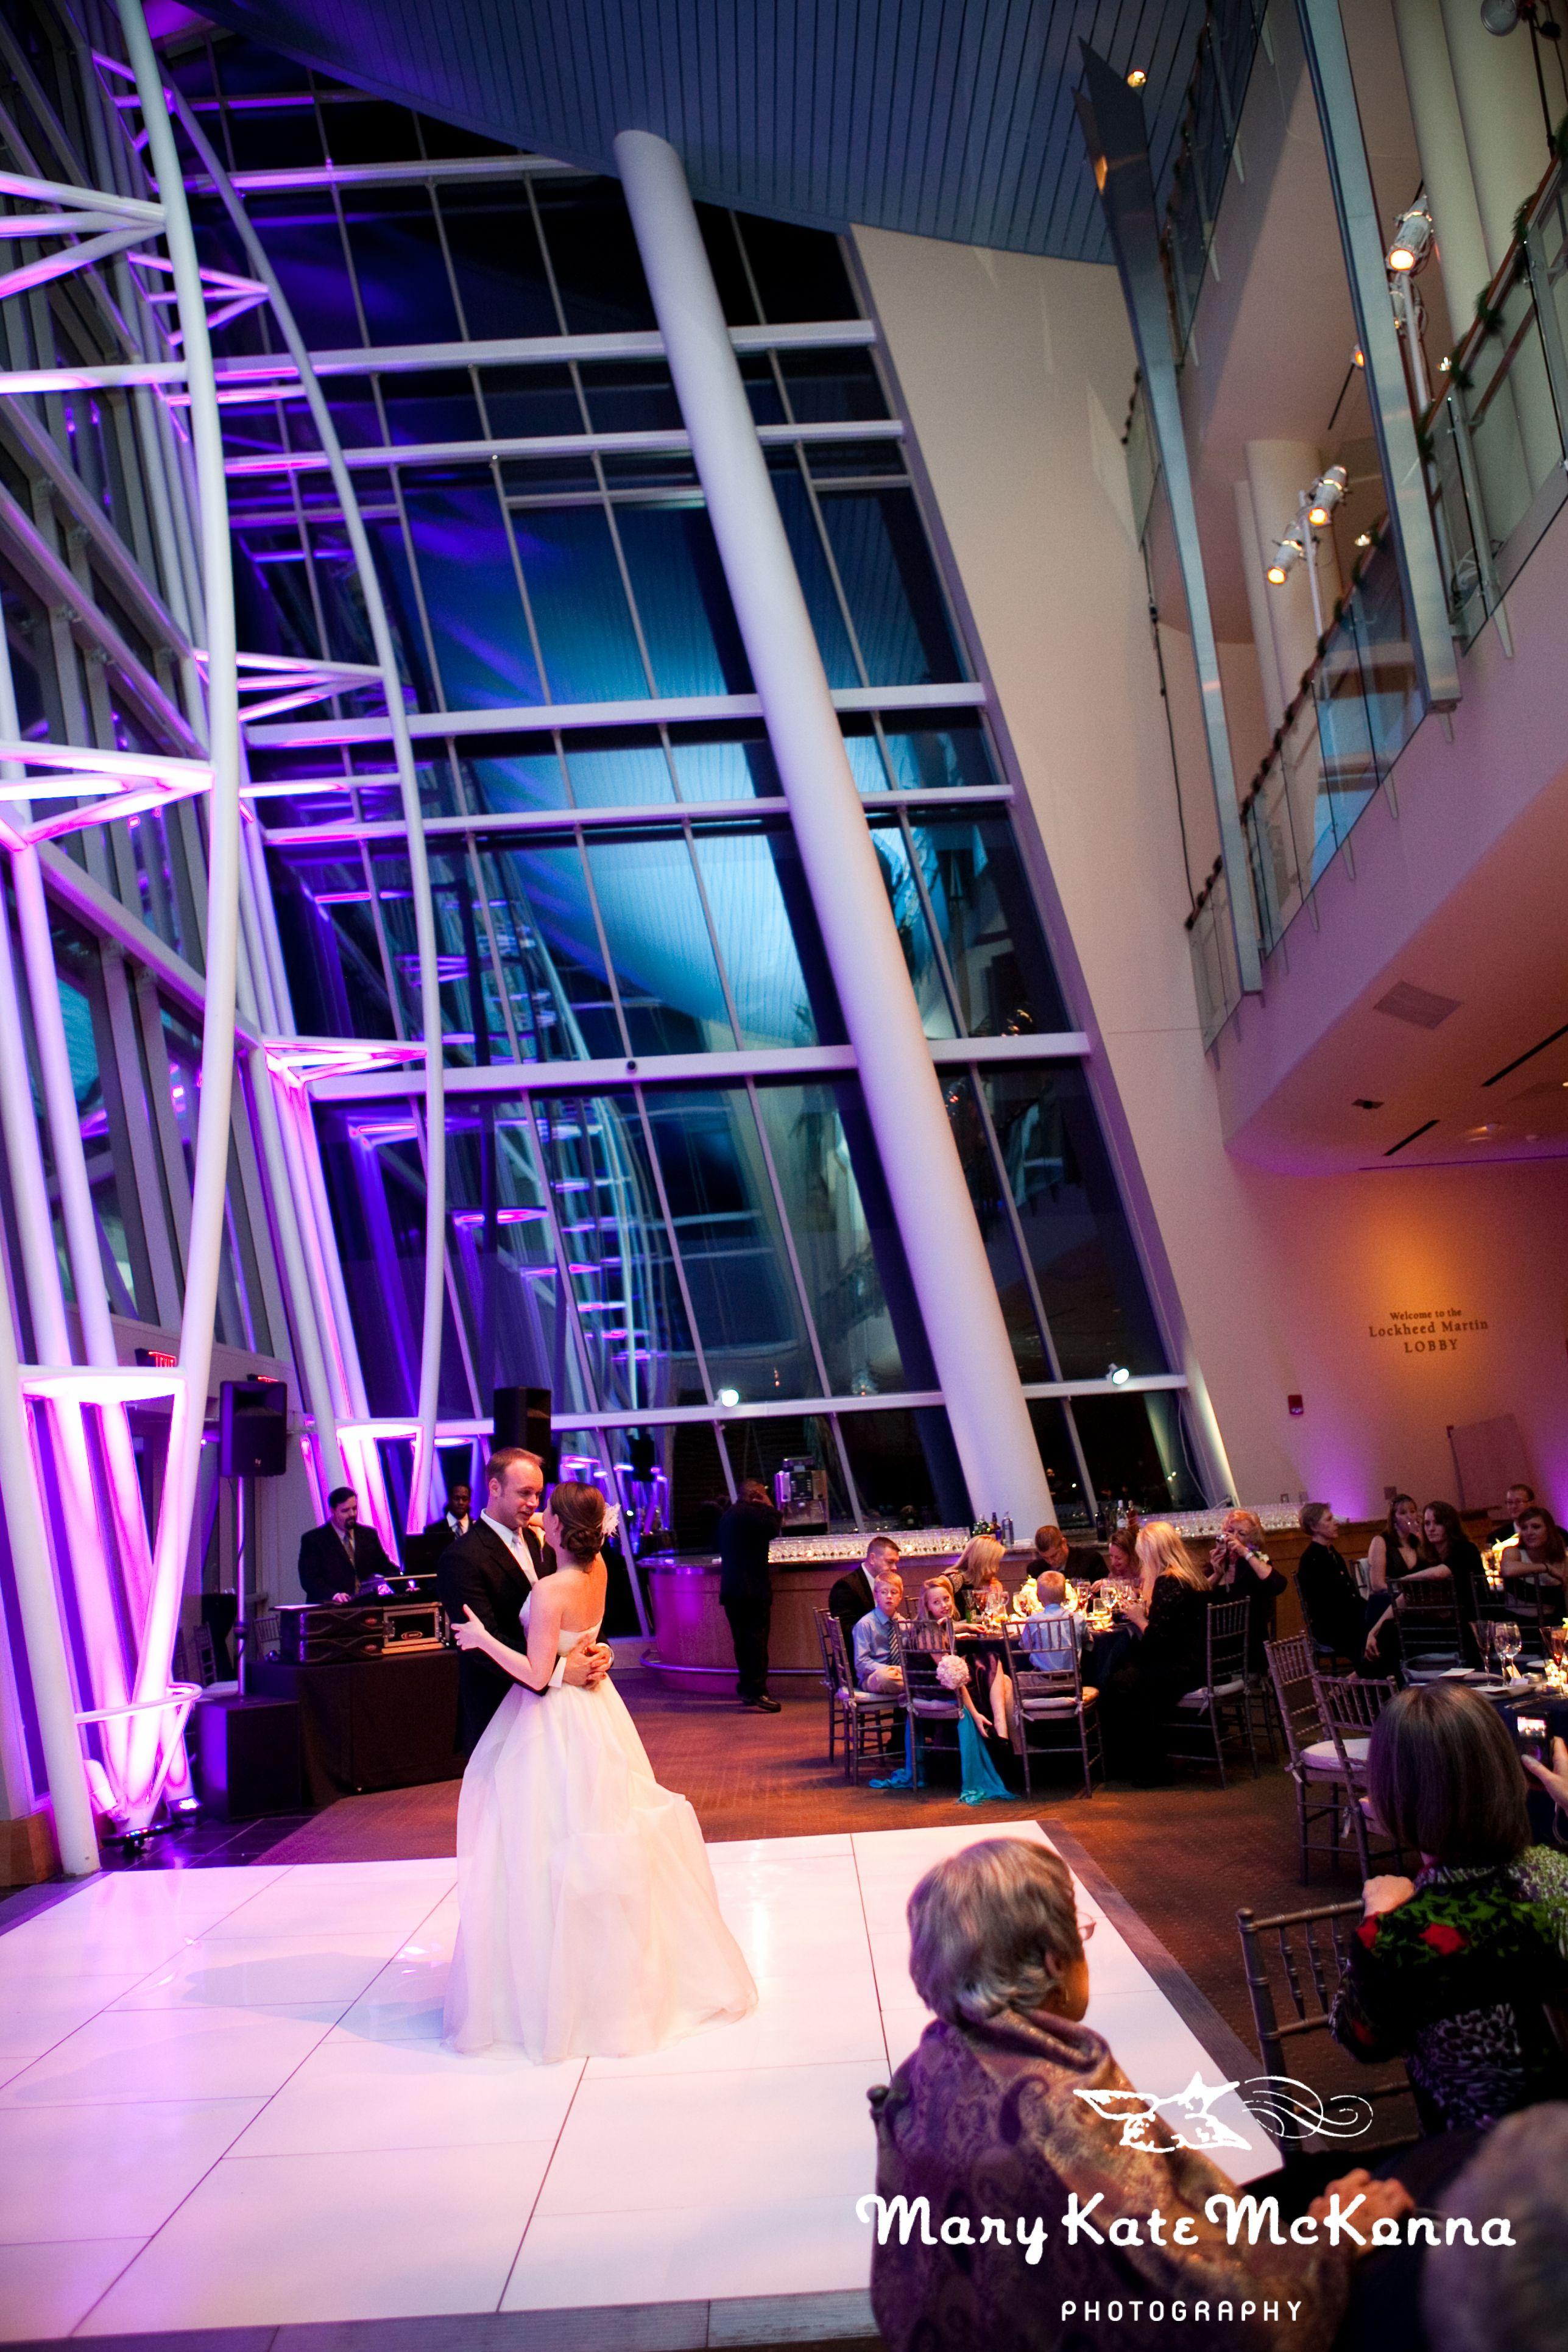 Bride and Groom share their first dance as newlyweds in